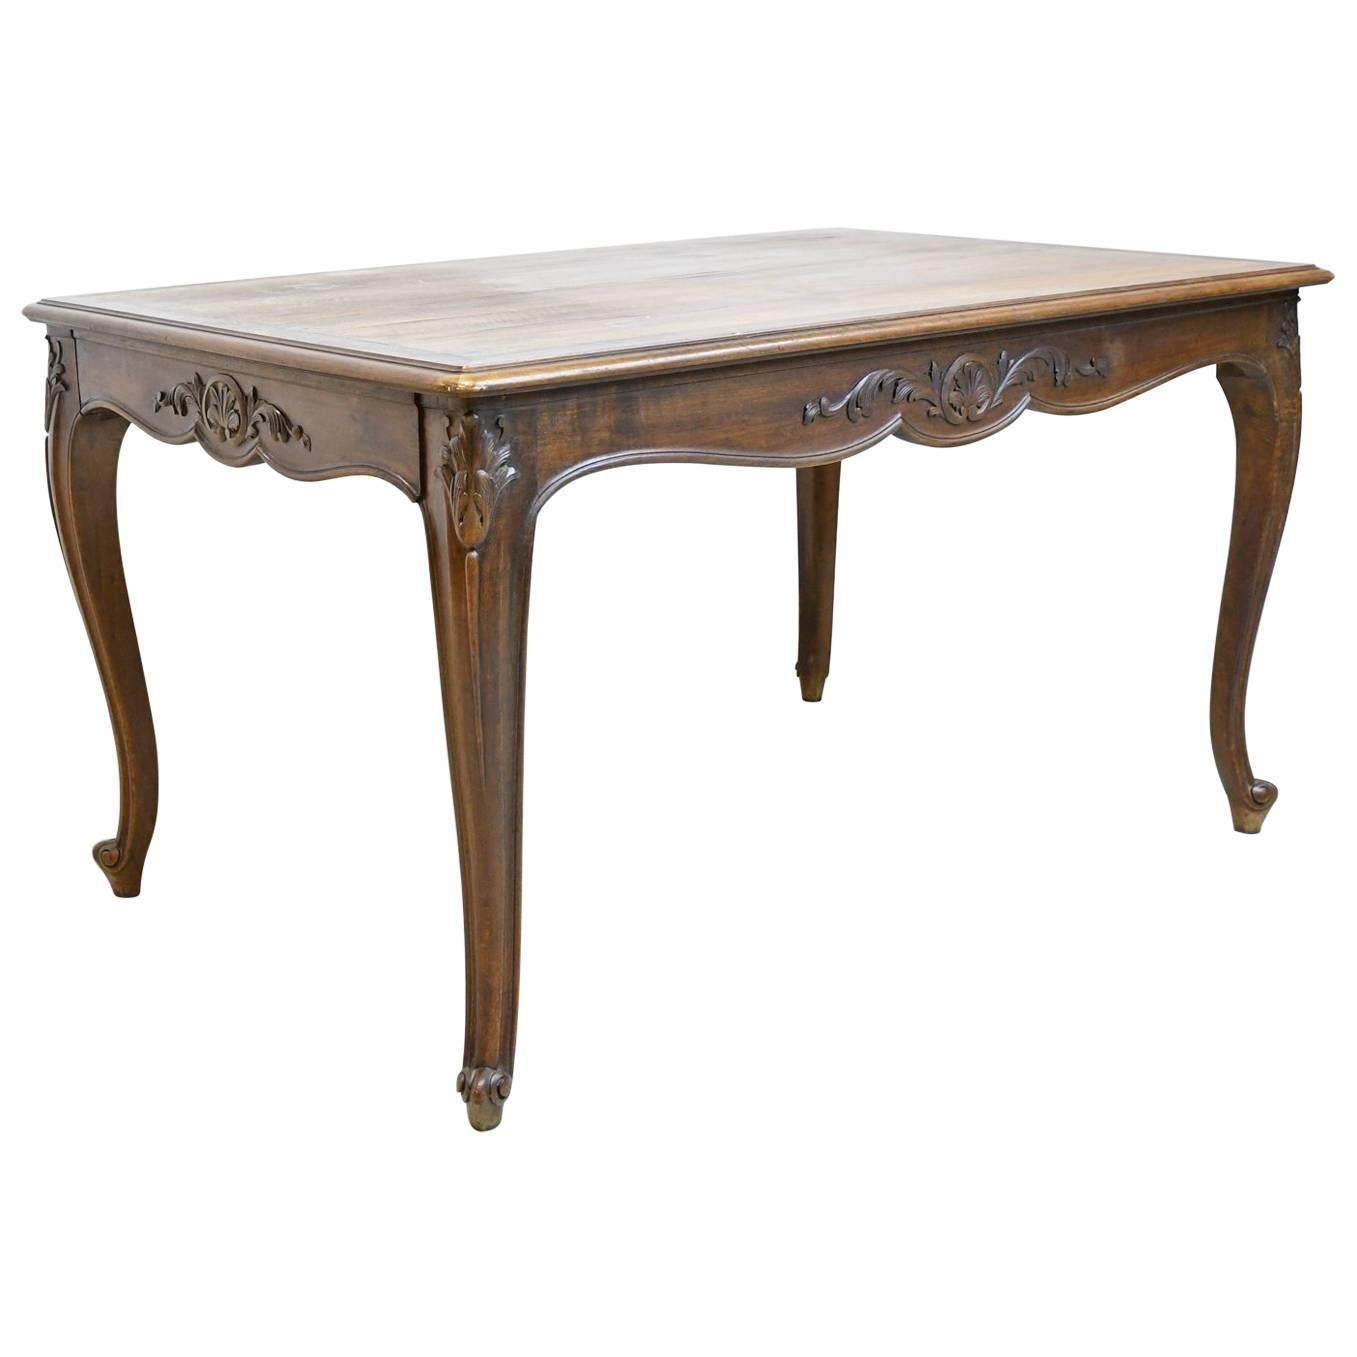 Late 19th Century Louis XV Style Extension Dining Table in Walnut